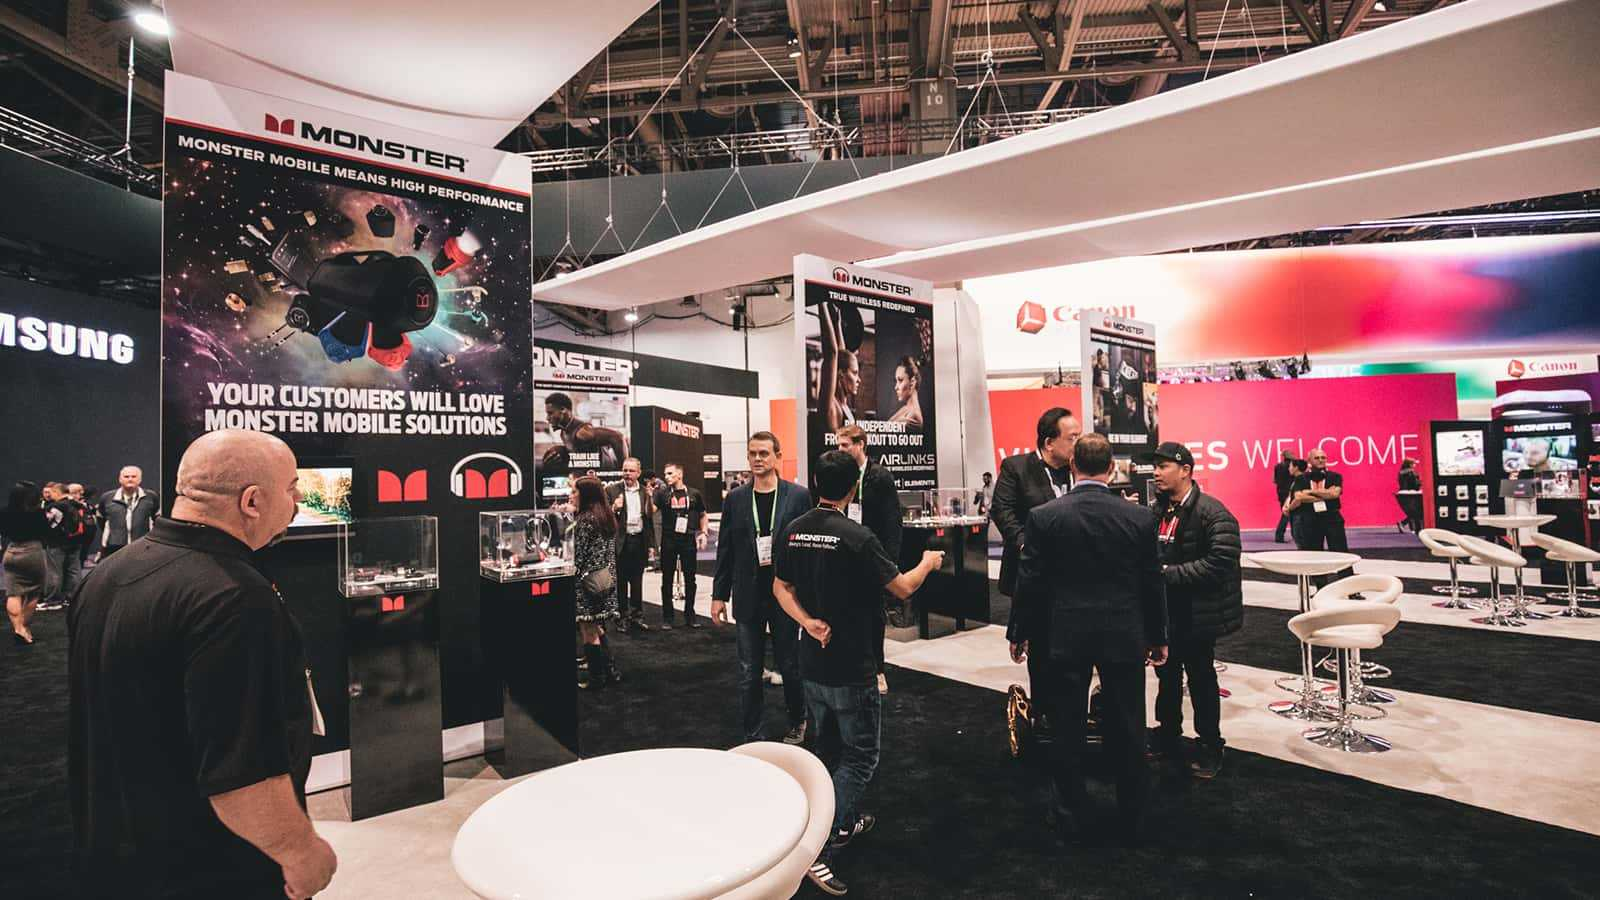 Brand ambassadors and attendees at the Monster CES 2018 experience.